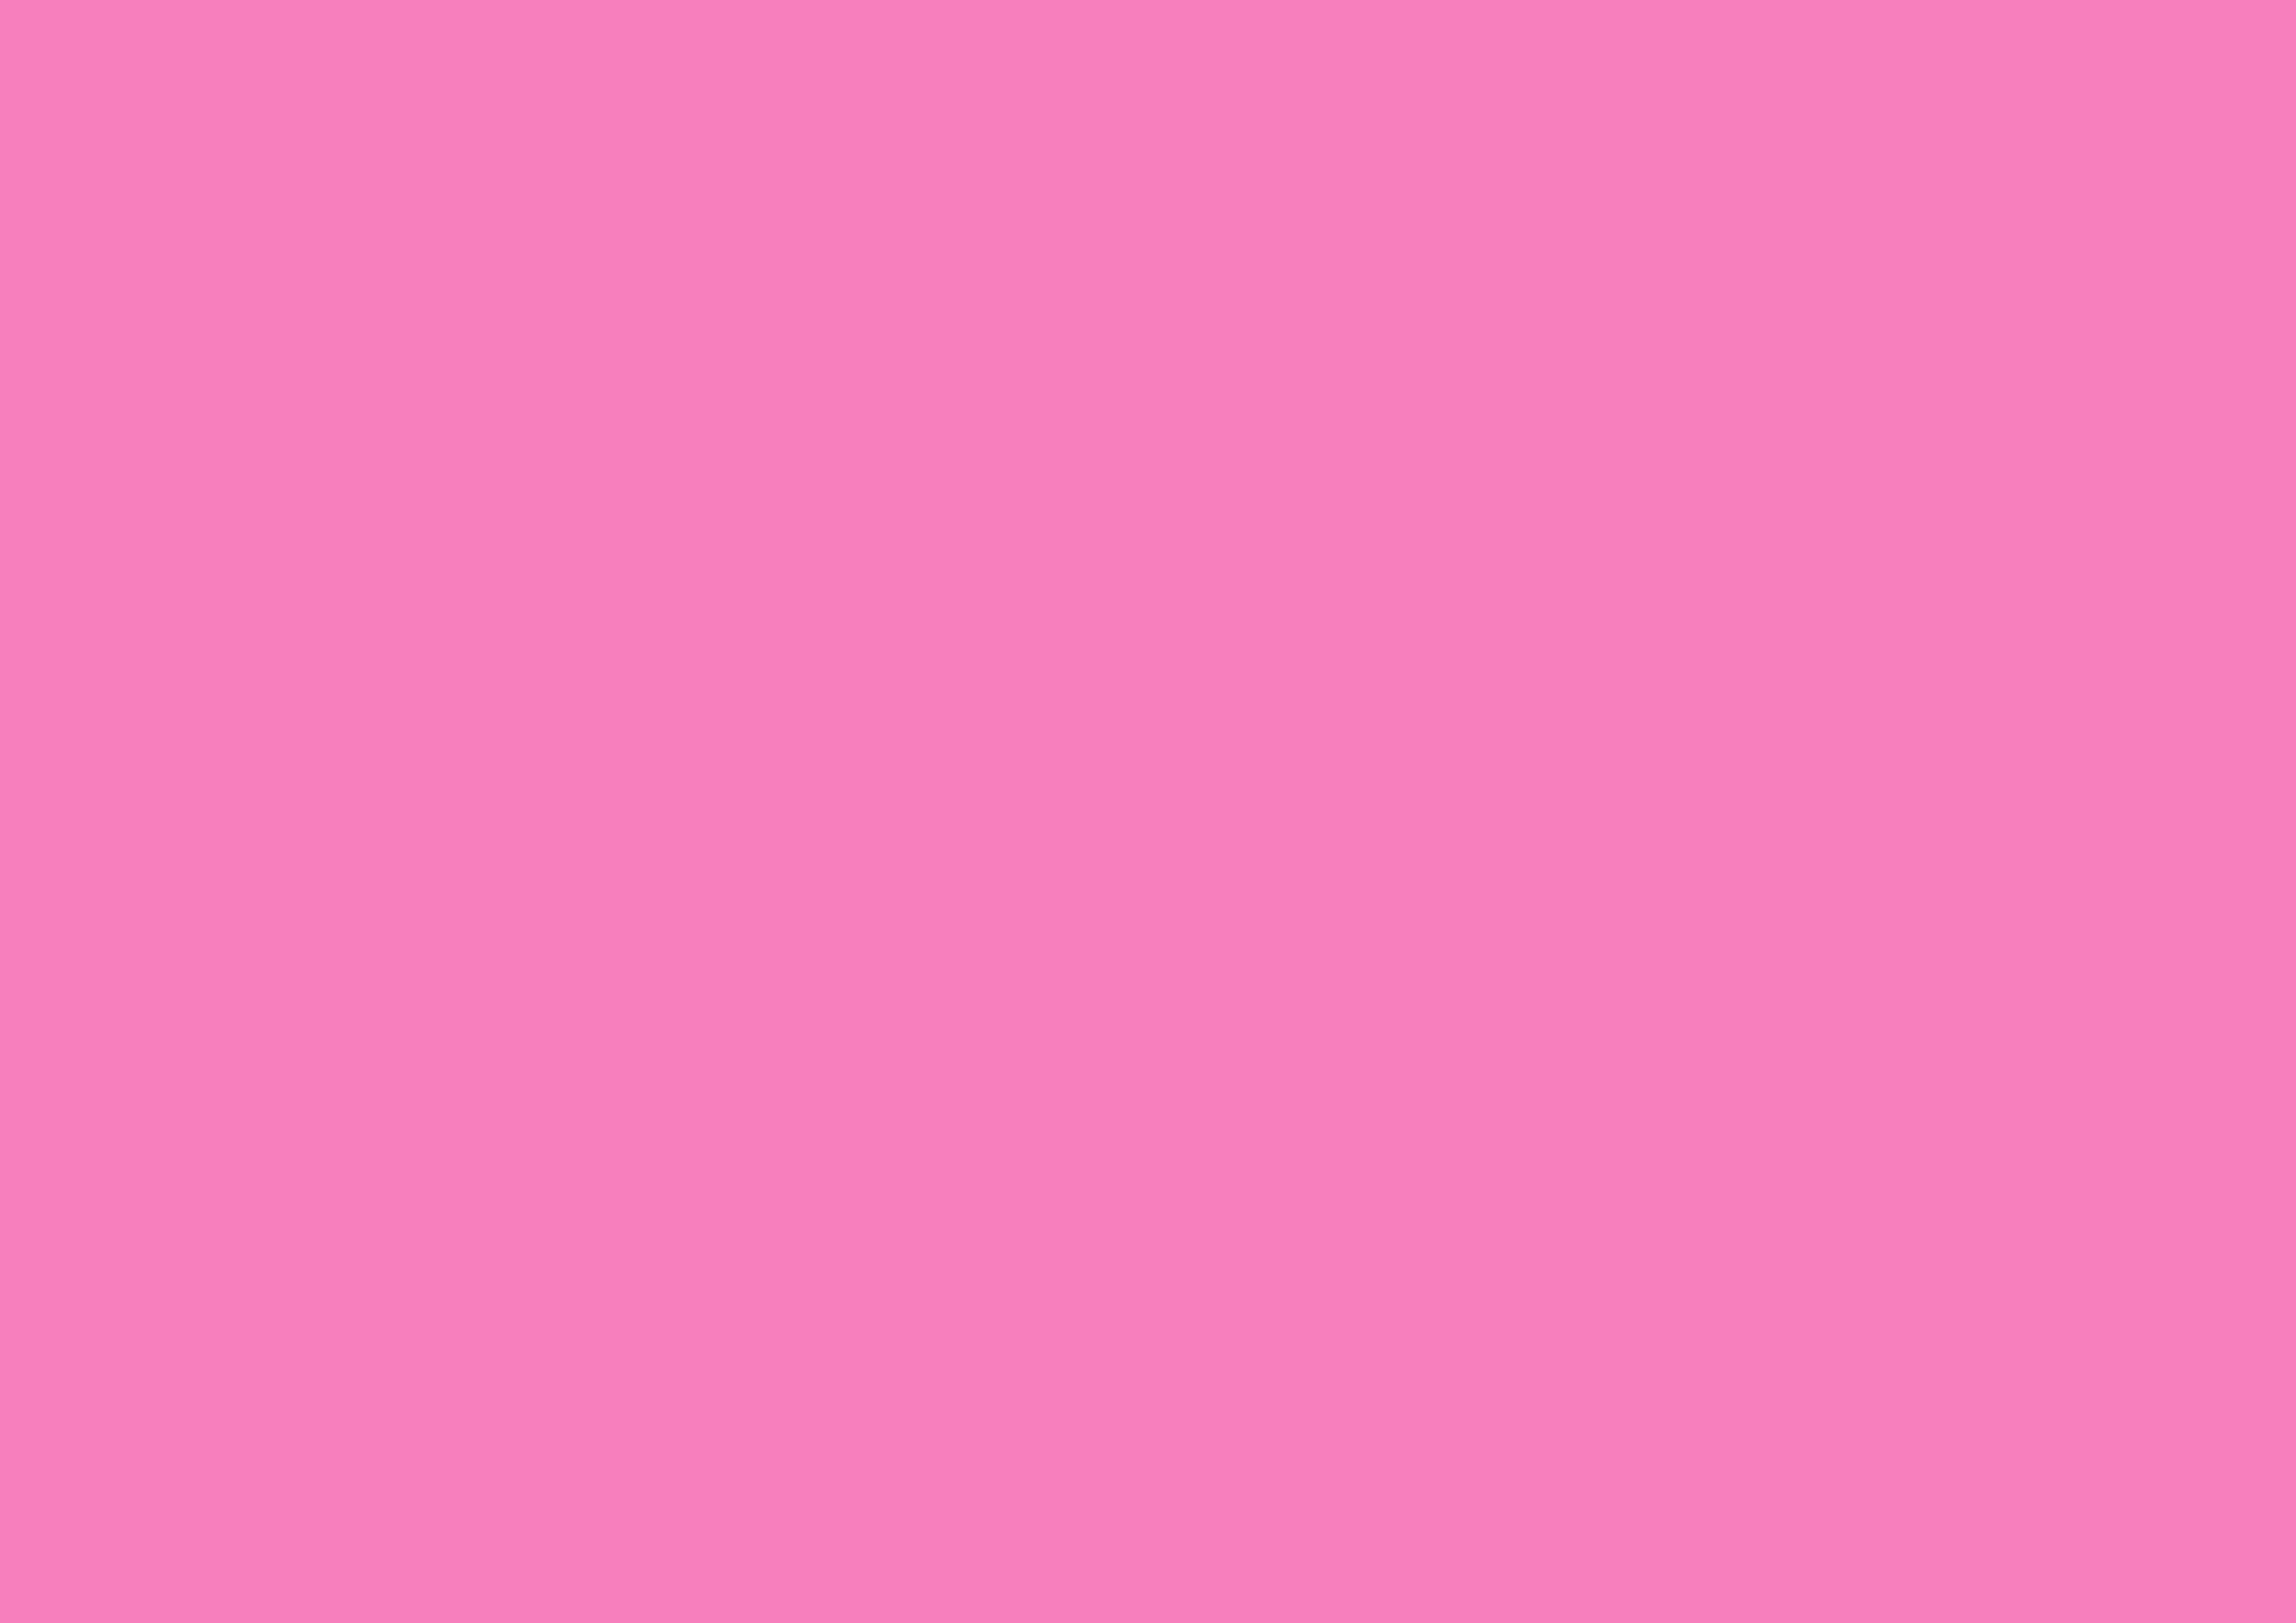 3508x2480 Persian Pink Solid Color Background